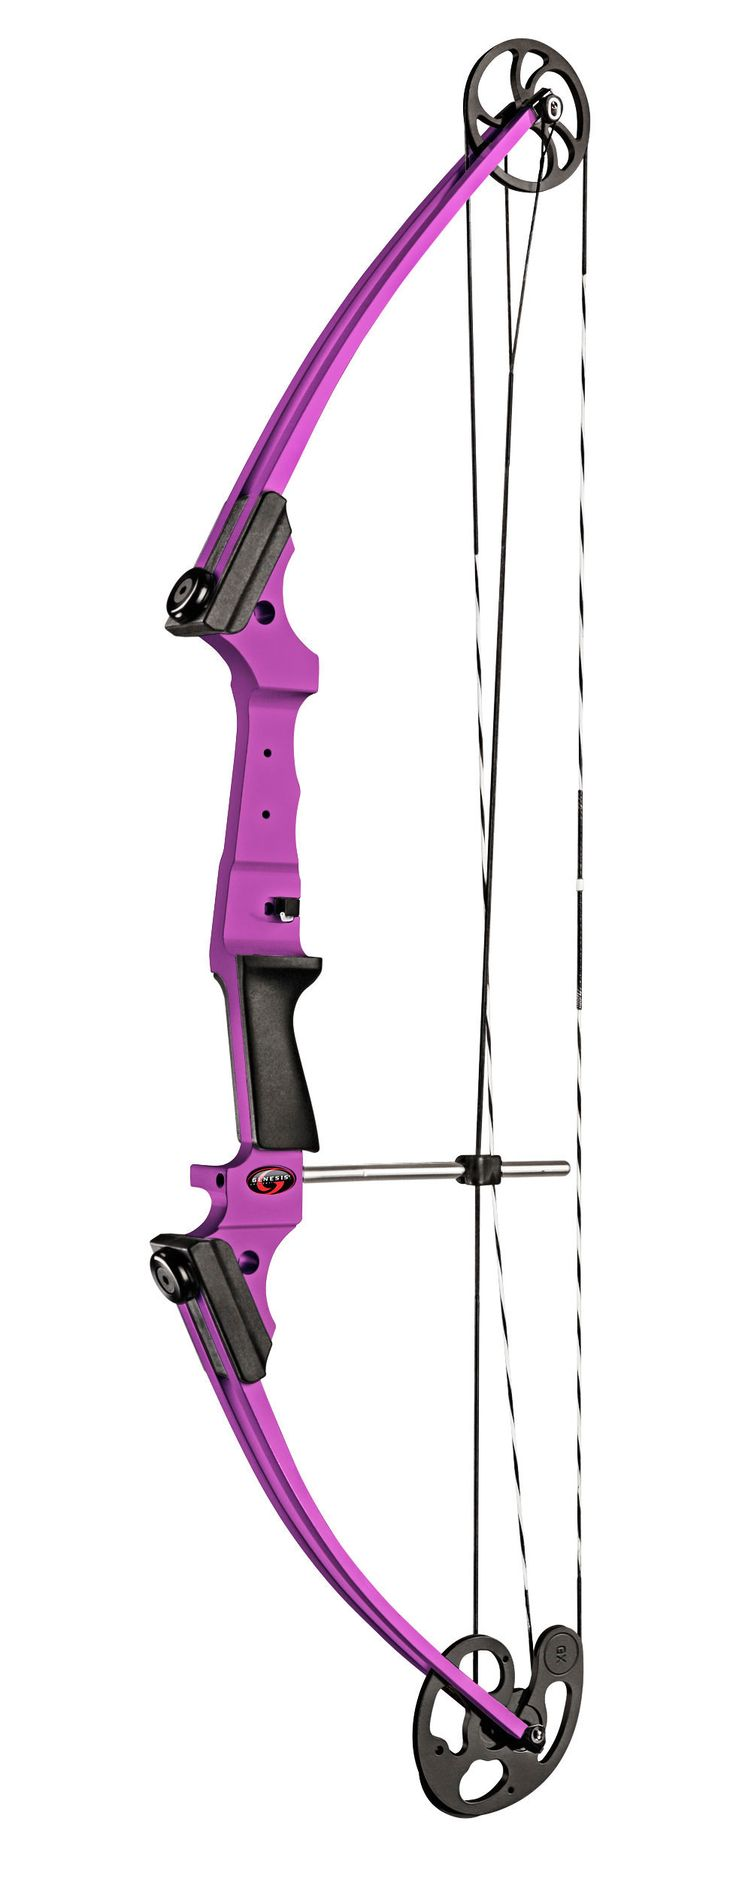 Genesis Original | Genesis® Bow #bbarchery #mission #archery #purple #archeryinschools